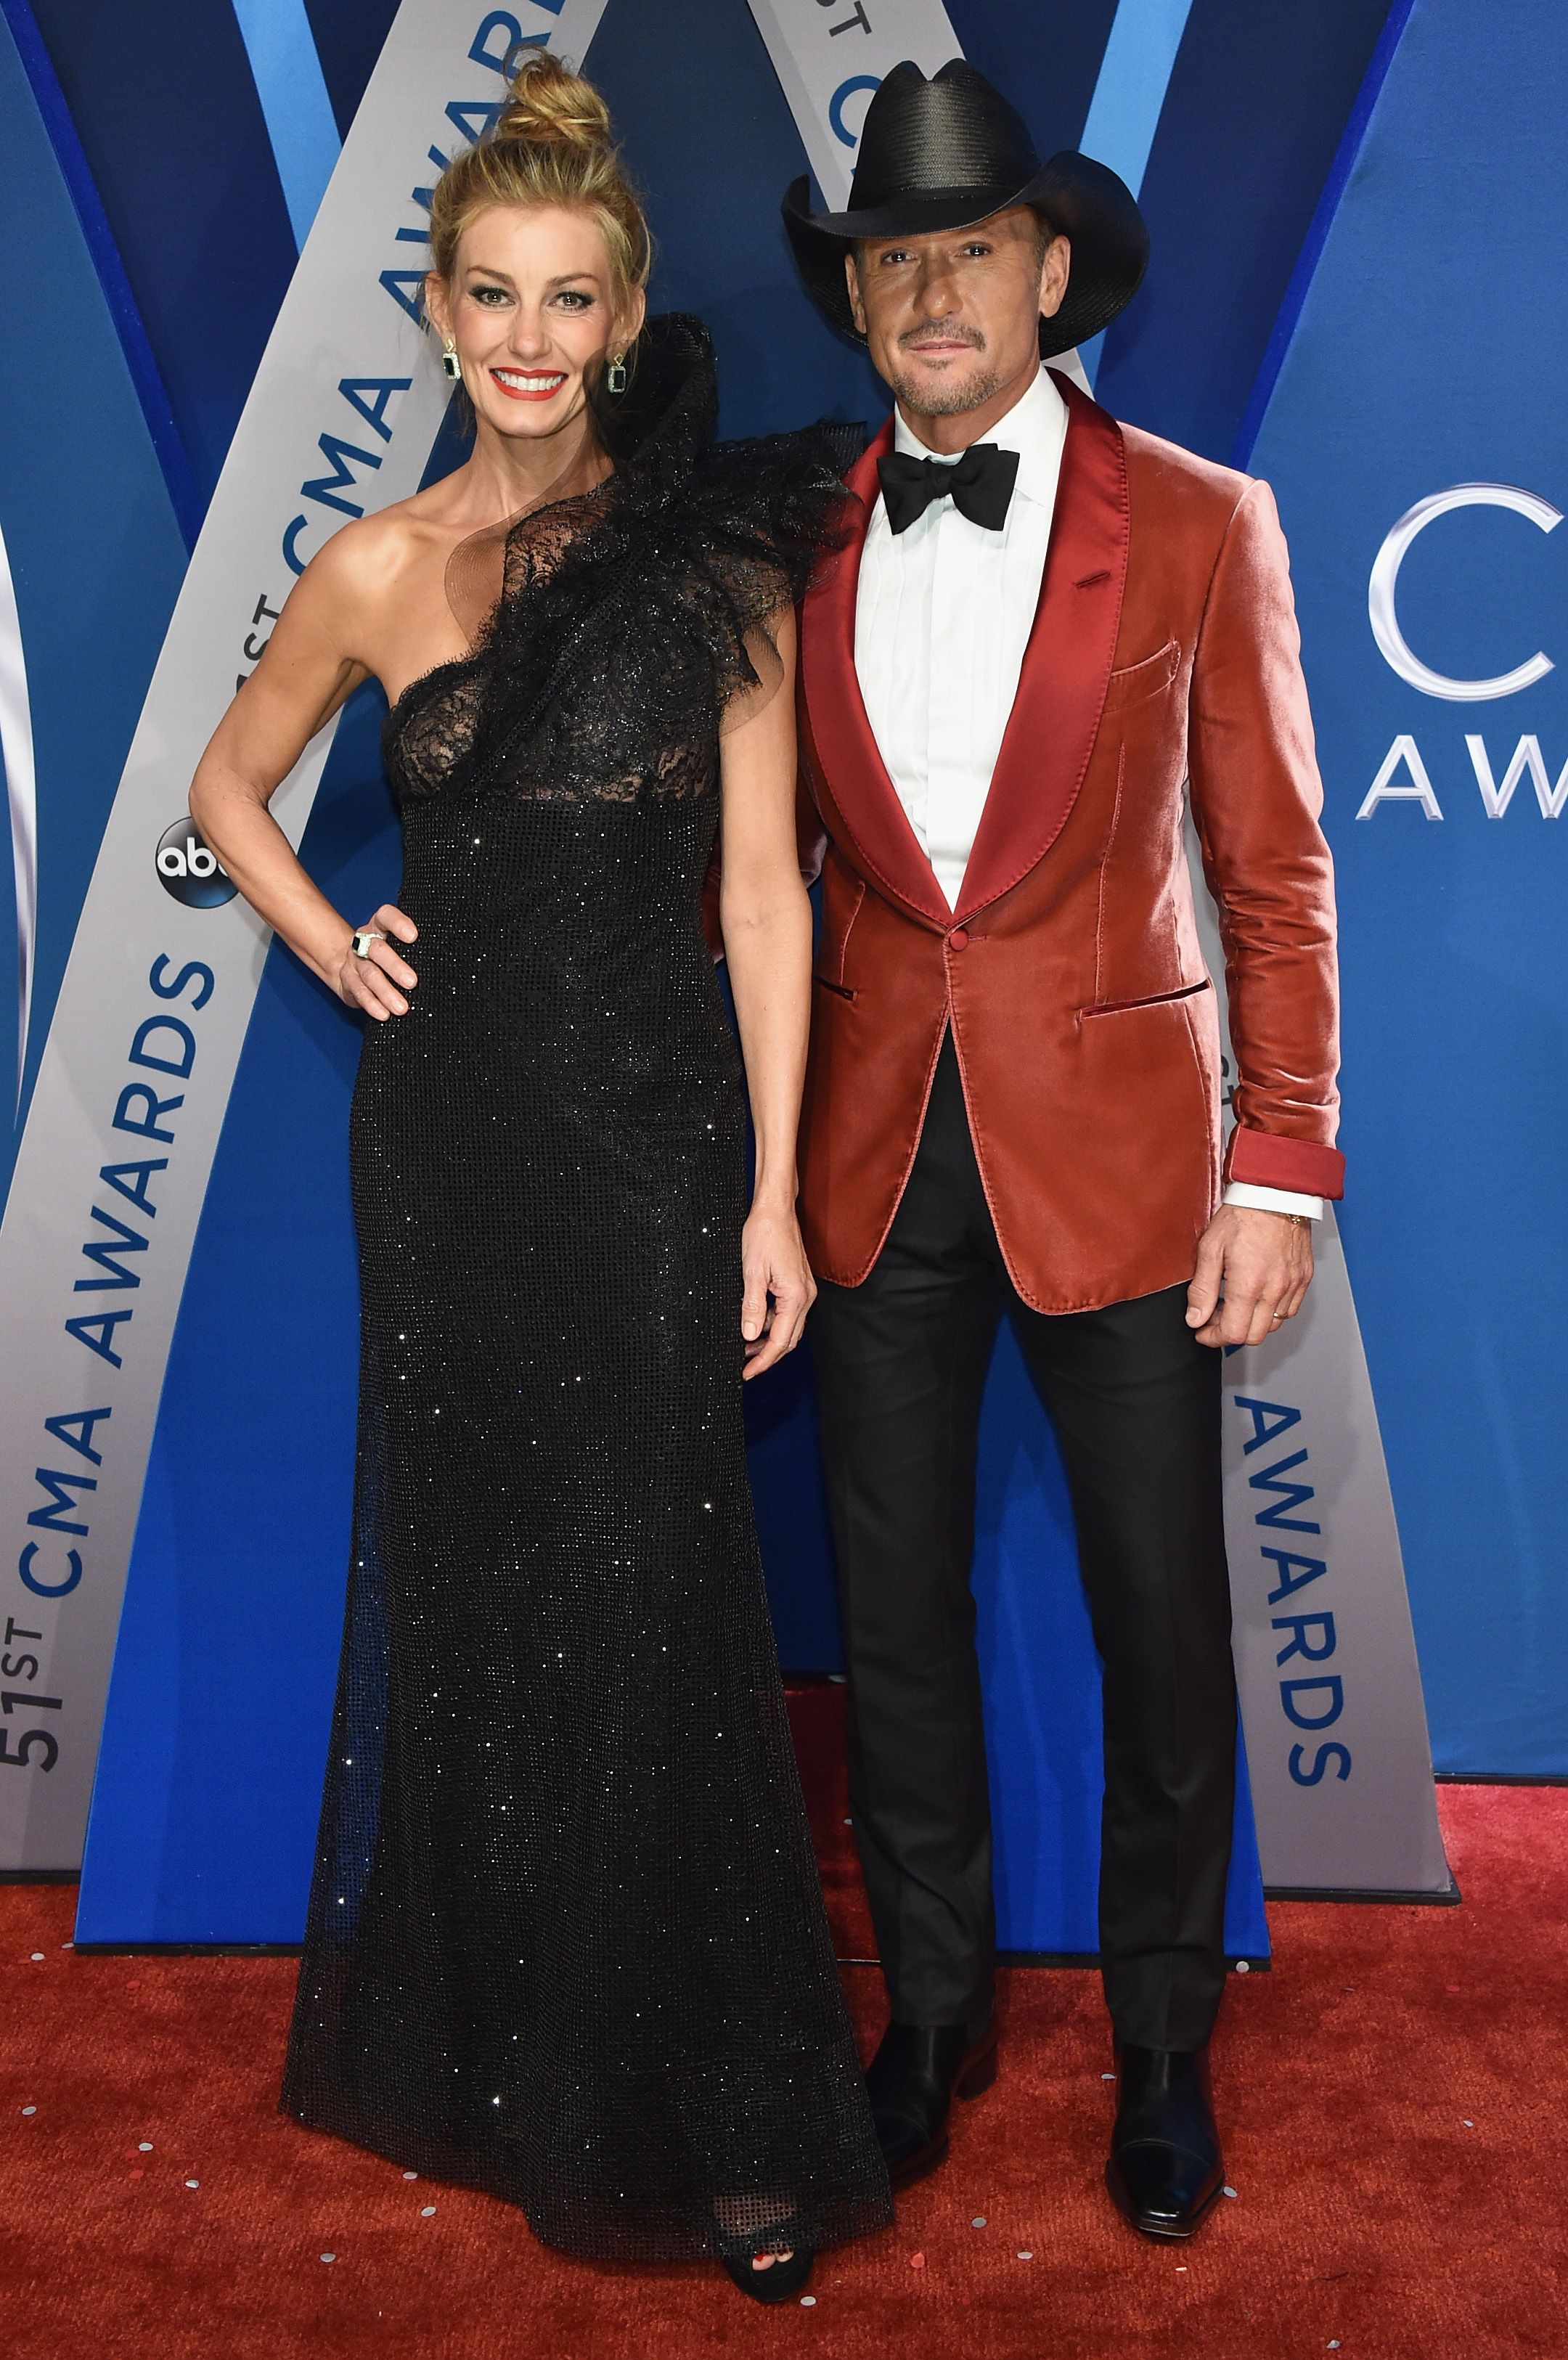 Tim Mcgraw And Faith Hill In Swimsuits Haters Are Shaming Faith